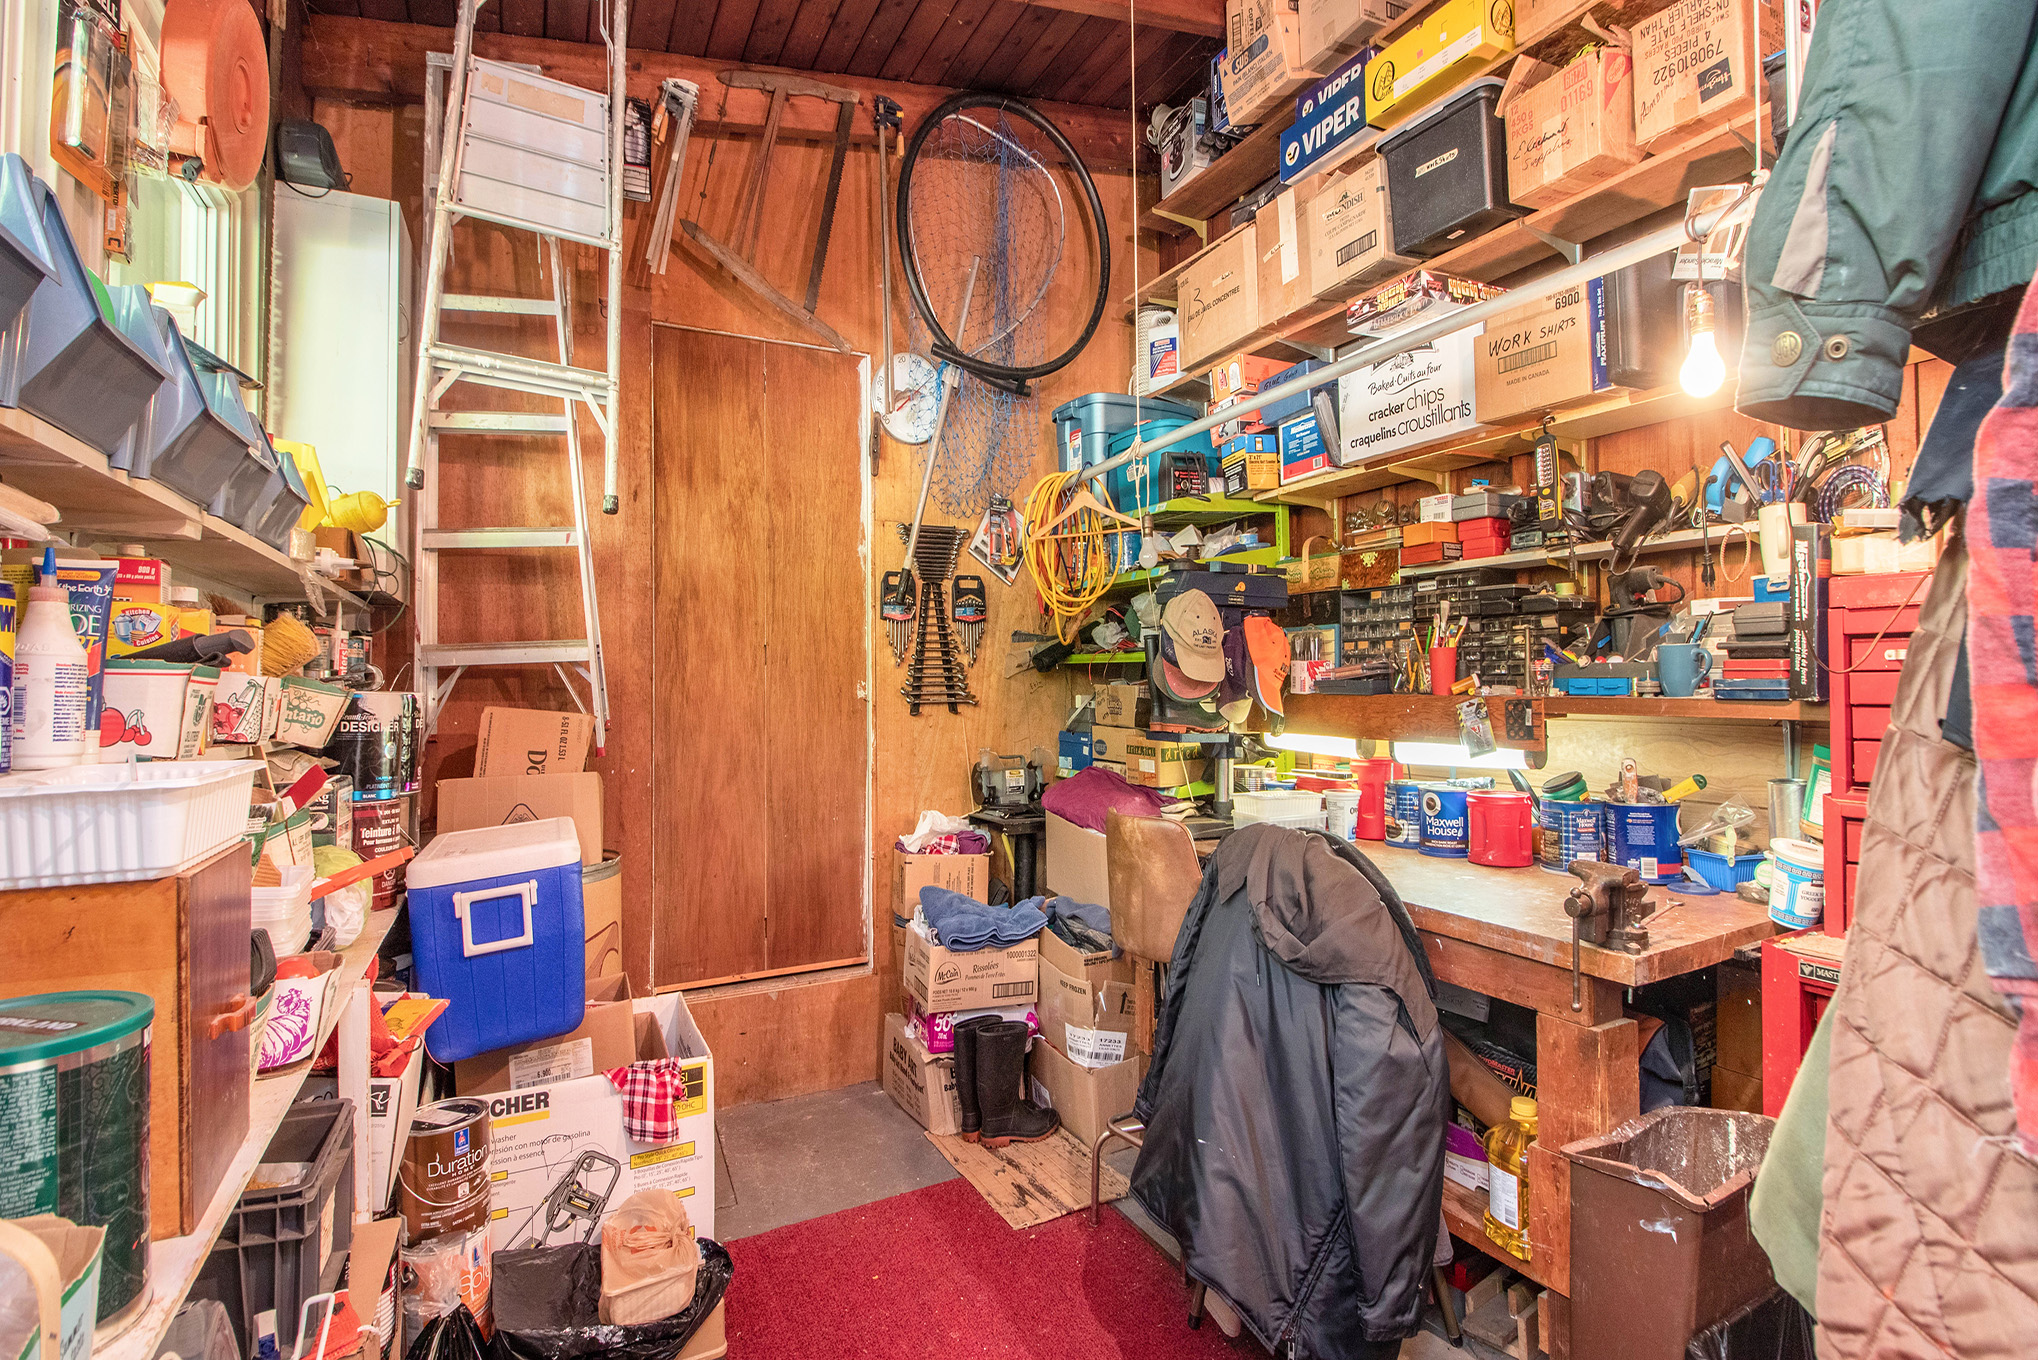 Great workshop or storage room.  Plans to renovate the kitchen and move the laundry room to this area on hand.